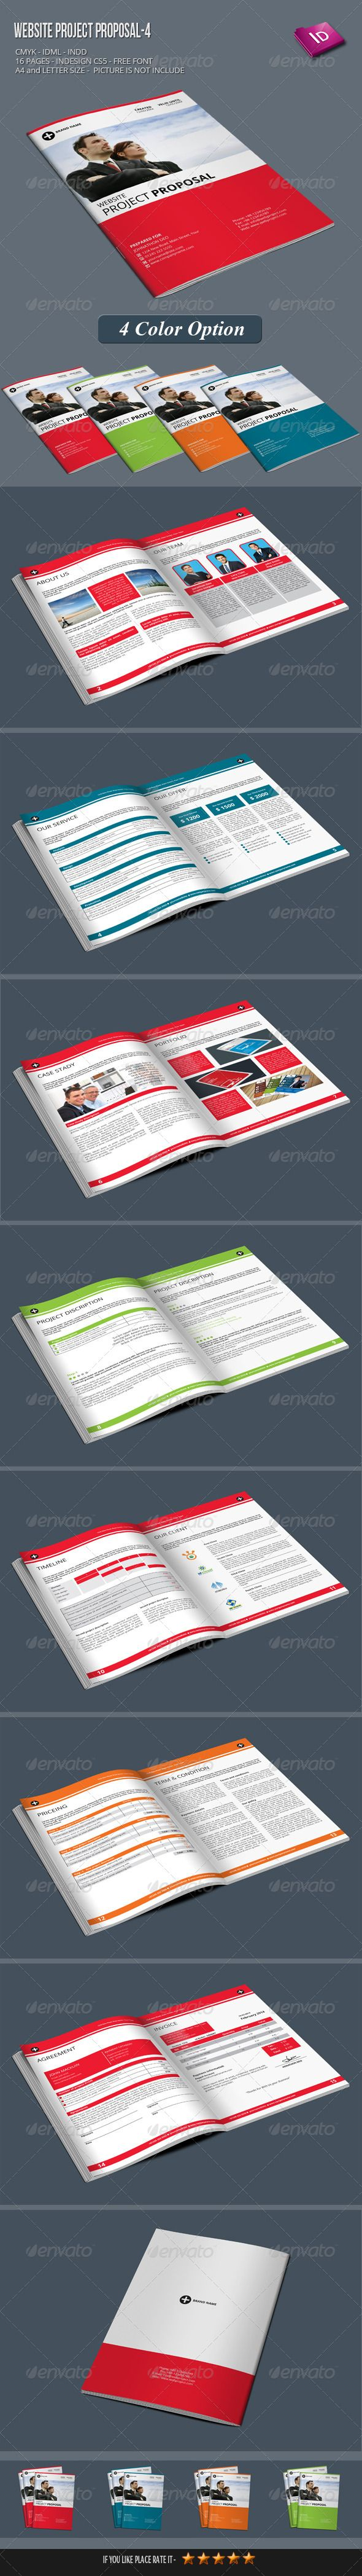 construction proposal templates%0A Website Project Proposal